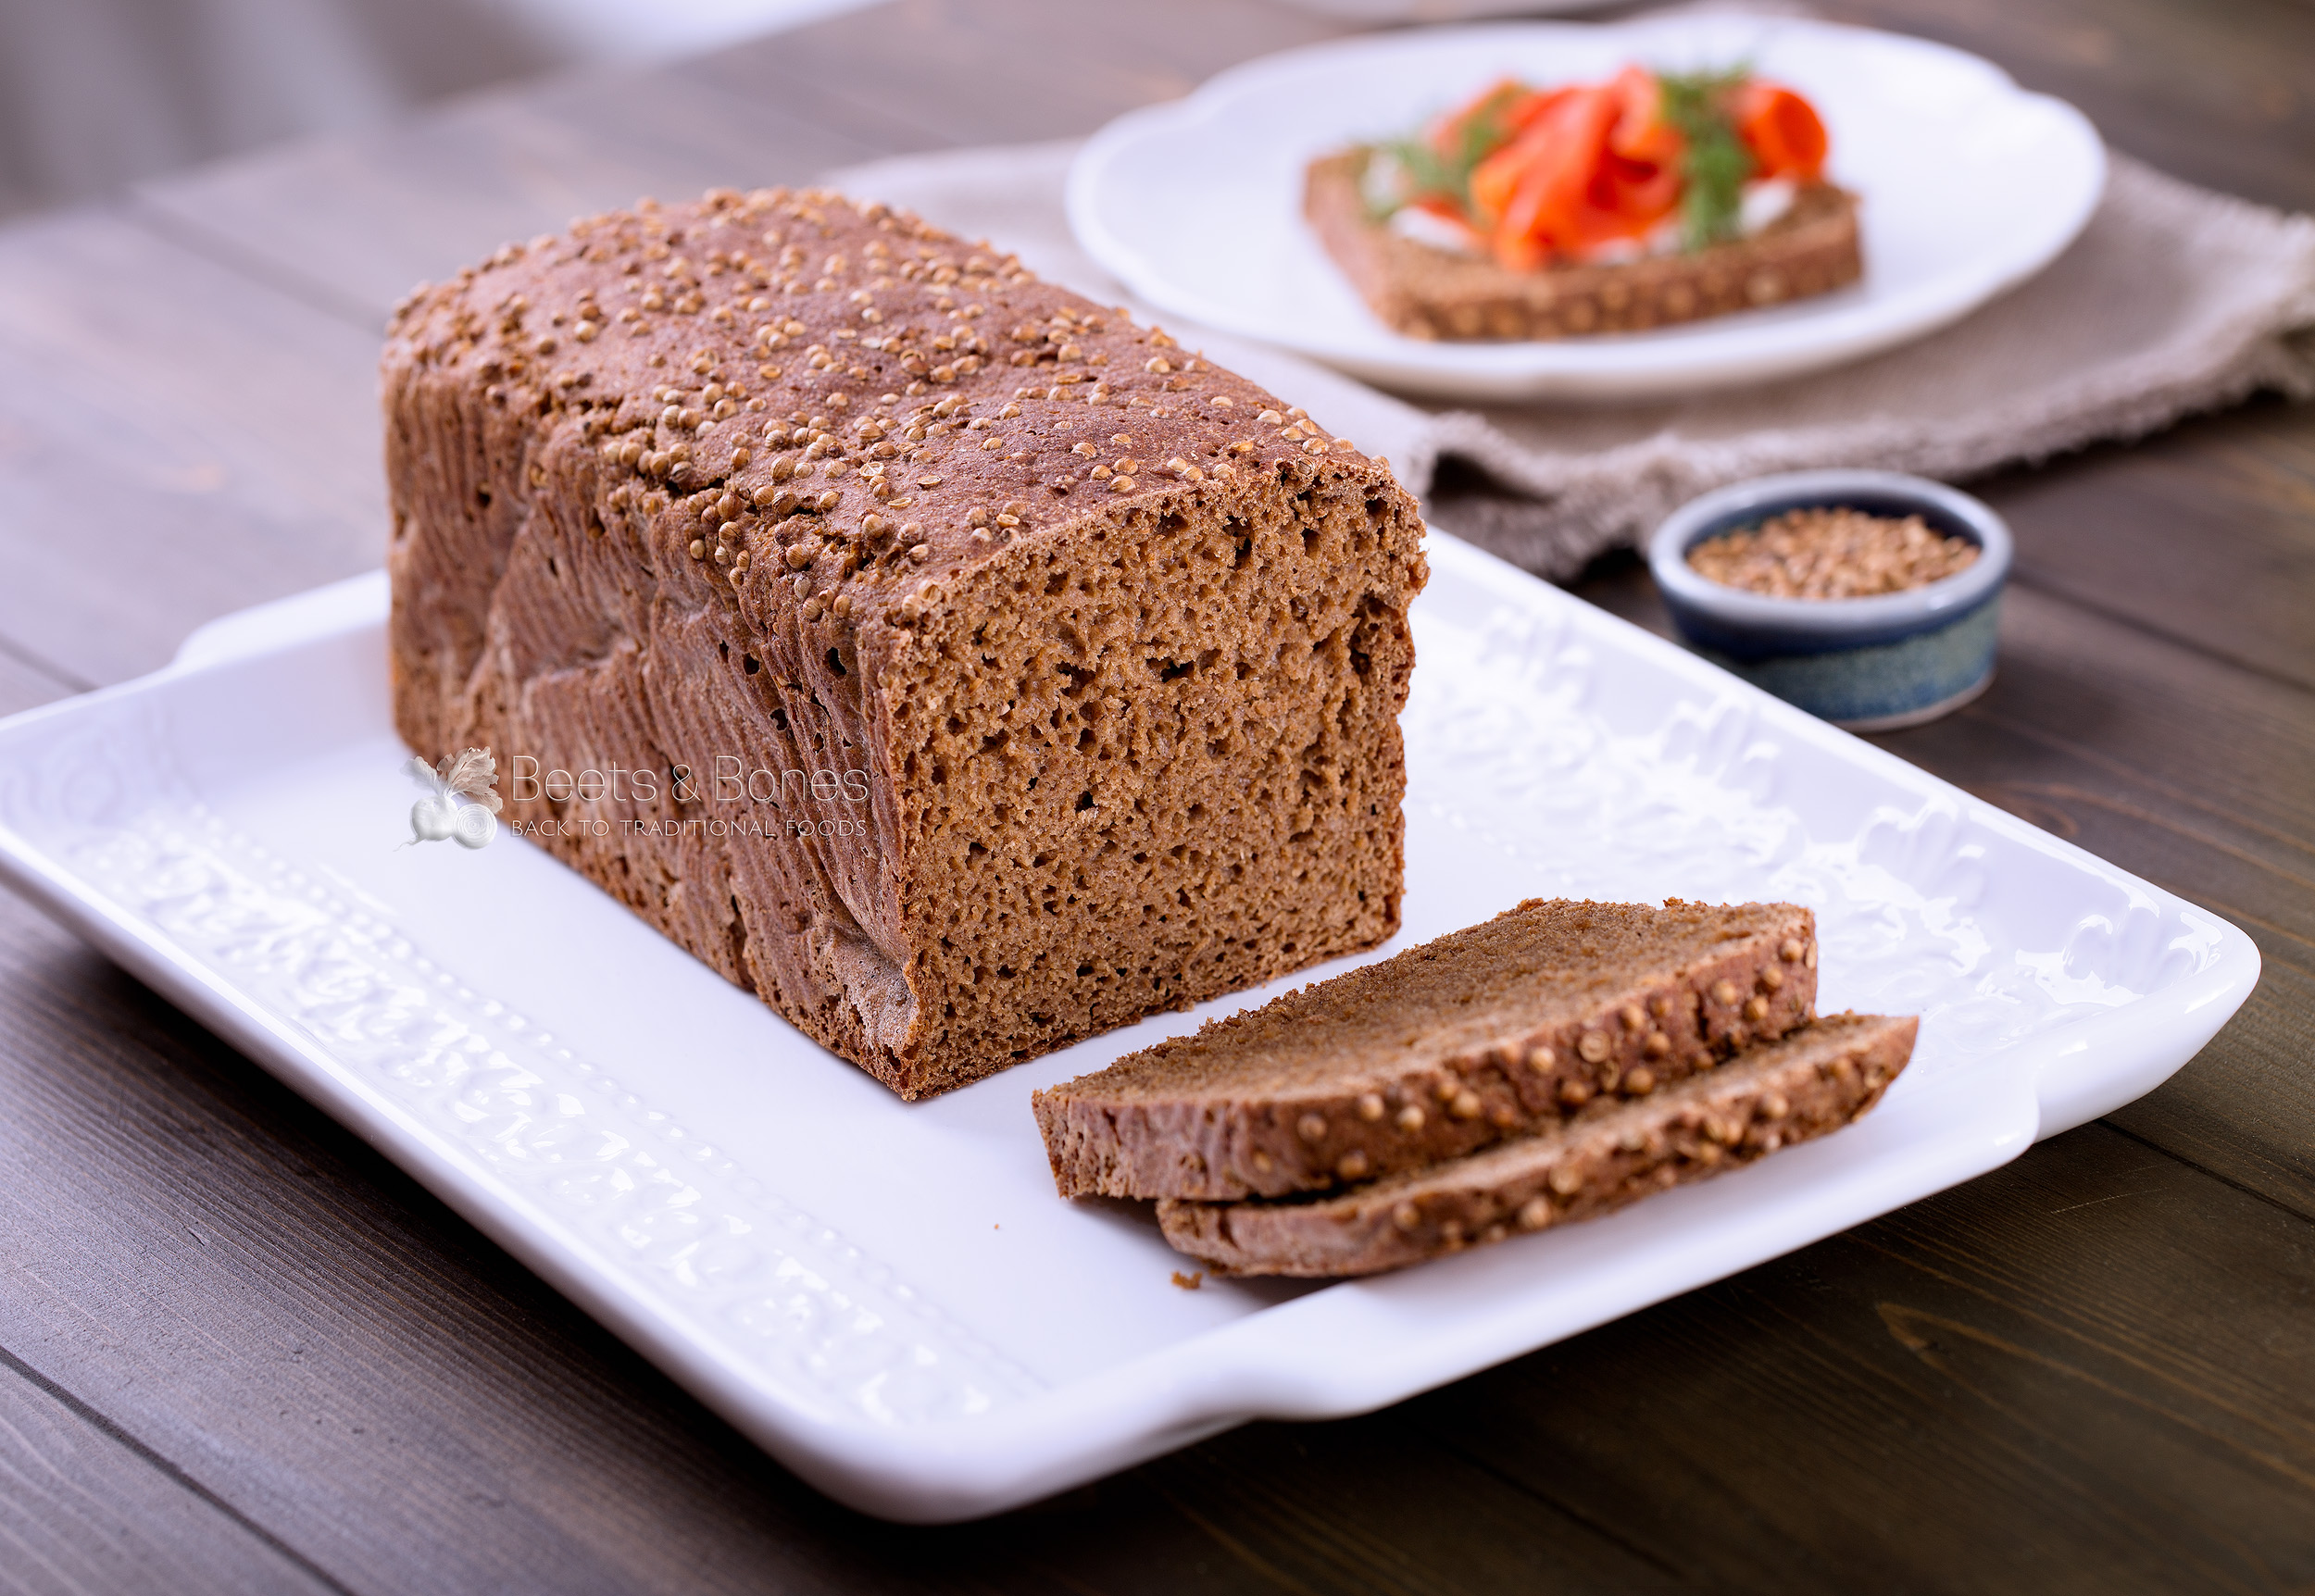 Tell me please, the recipe for Borodino bread, which can be baked in a bread maker